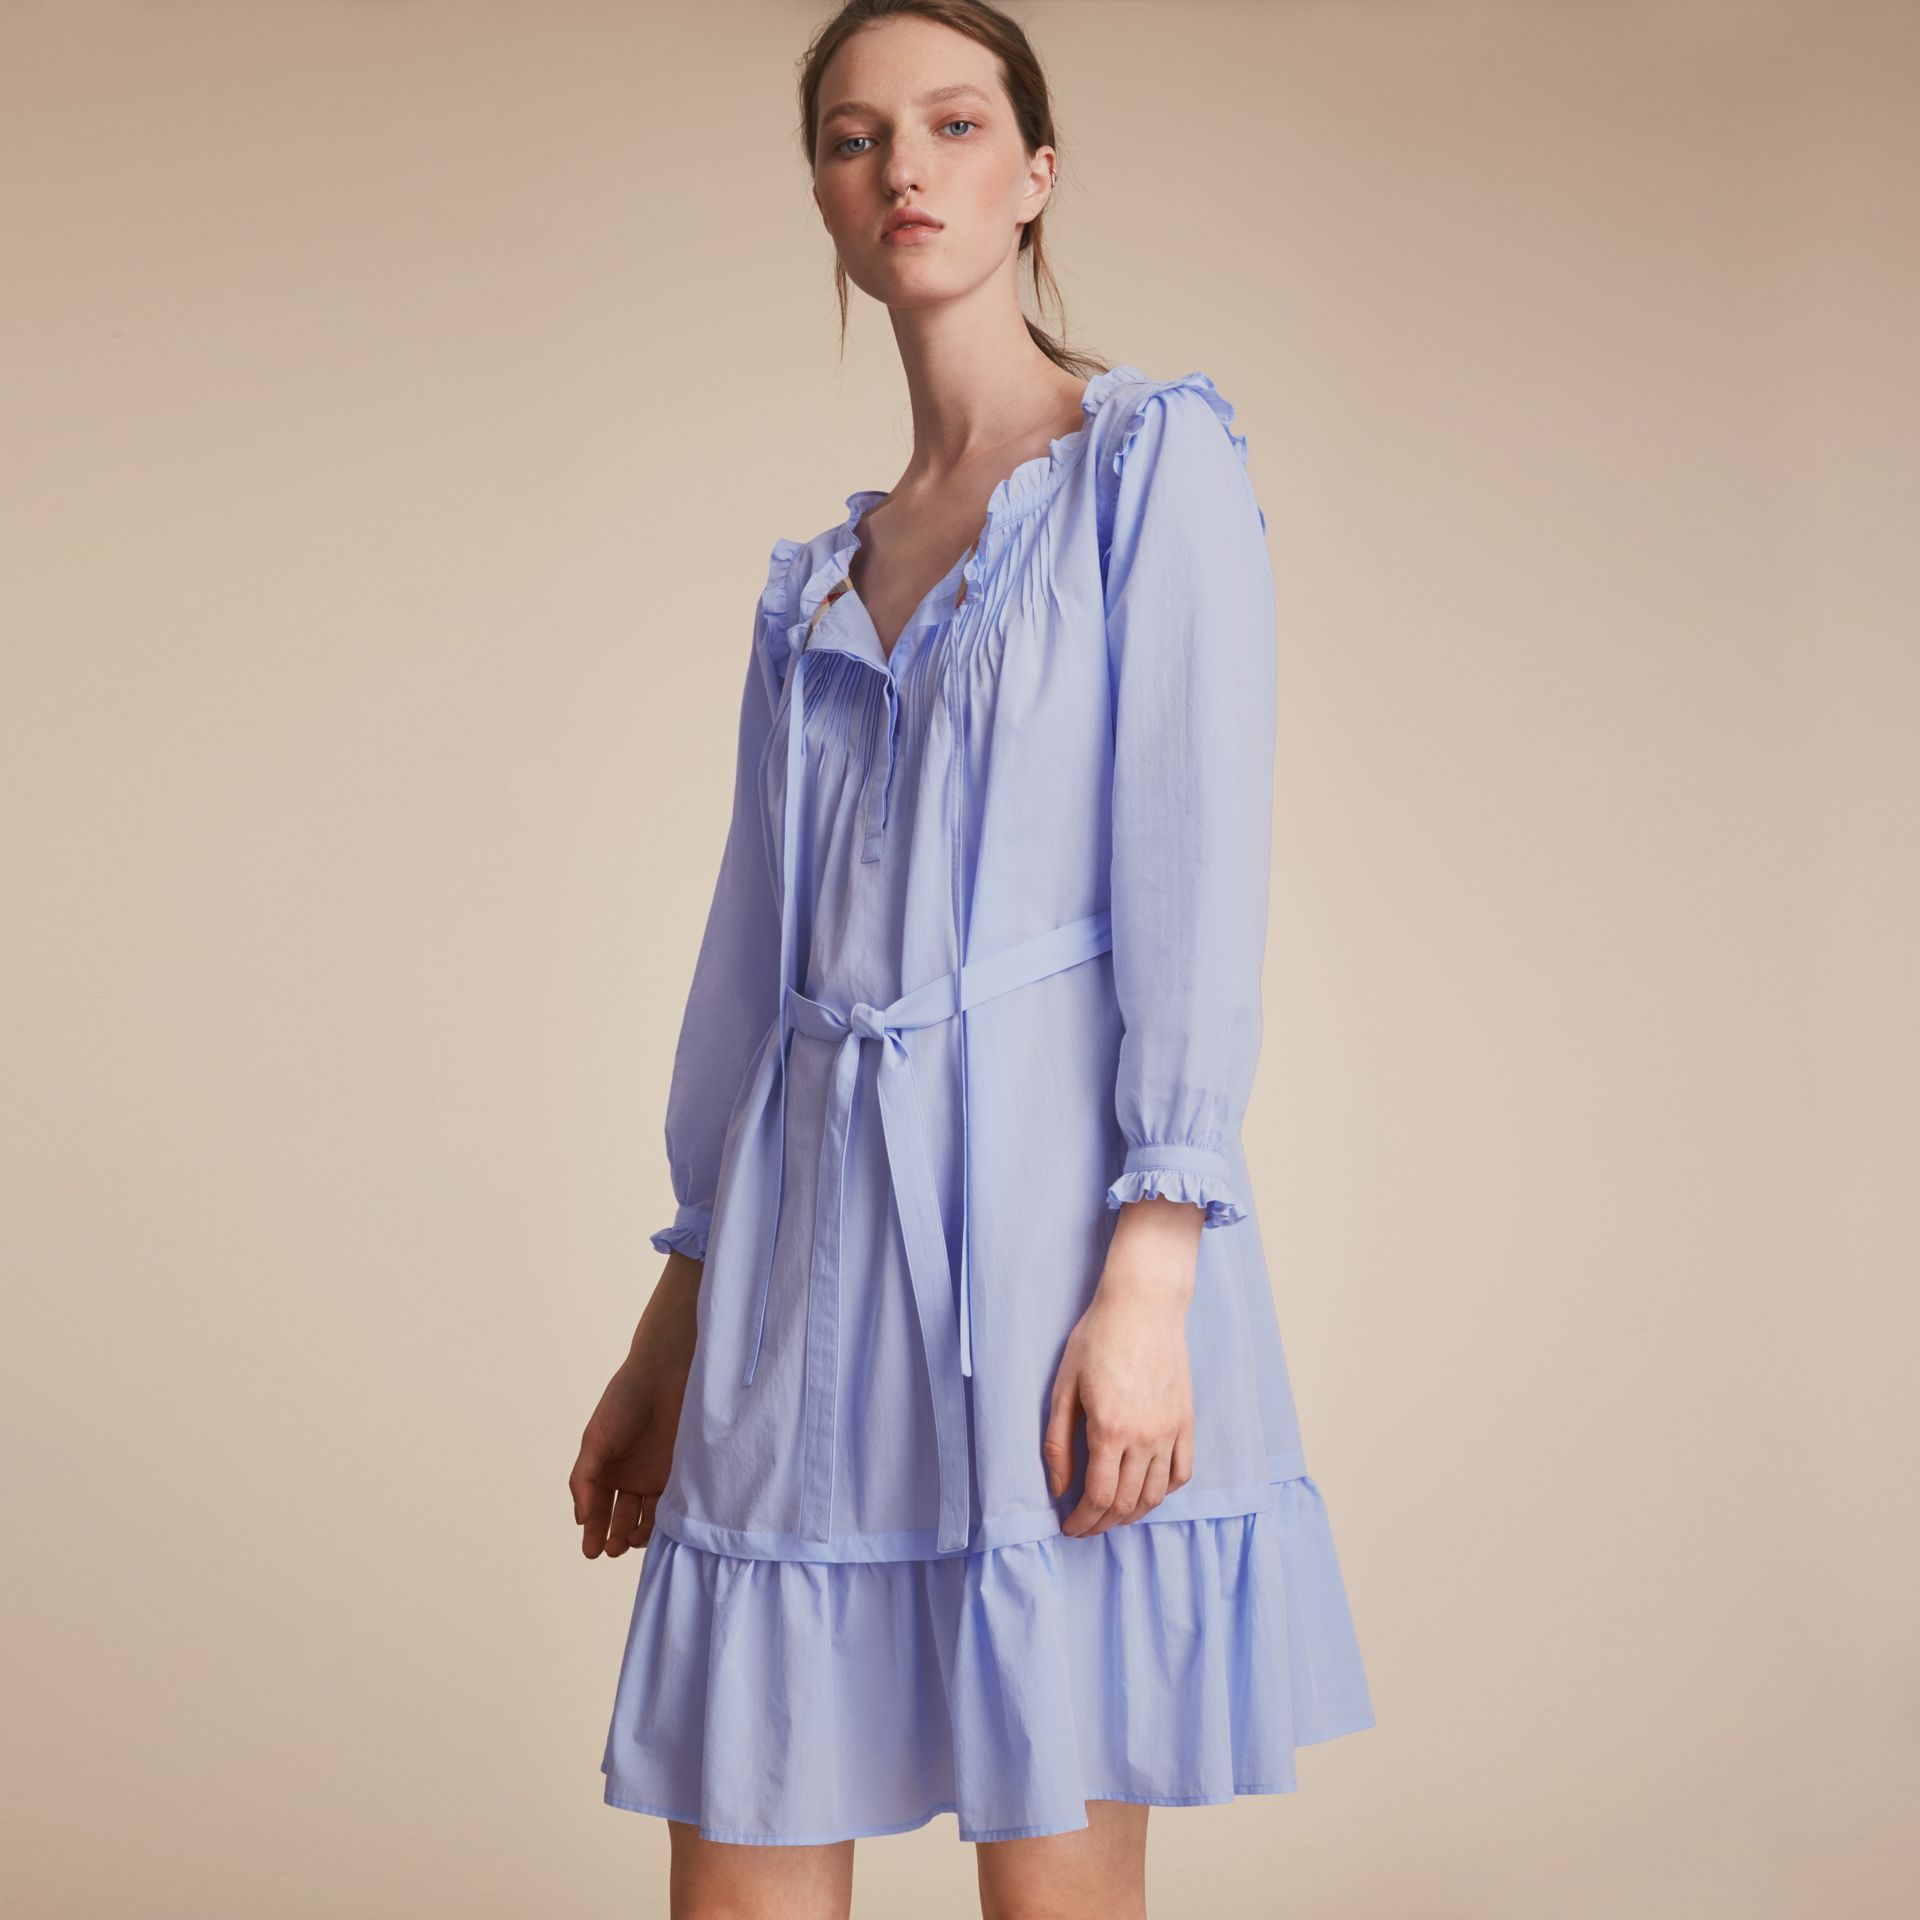 Ruffle and Pintuck Detail Cotton Dress in Pale Blue - Women | Burberry - gallery image 5